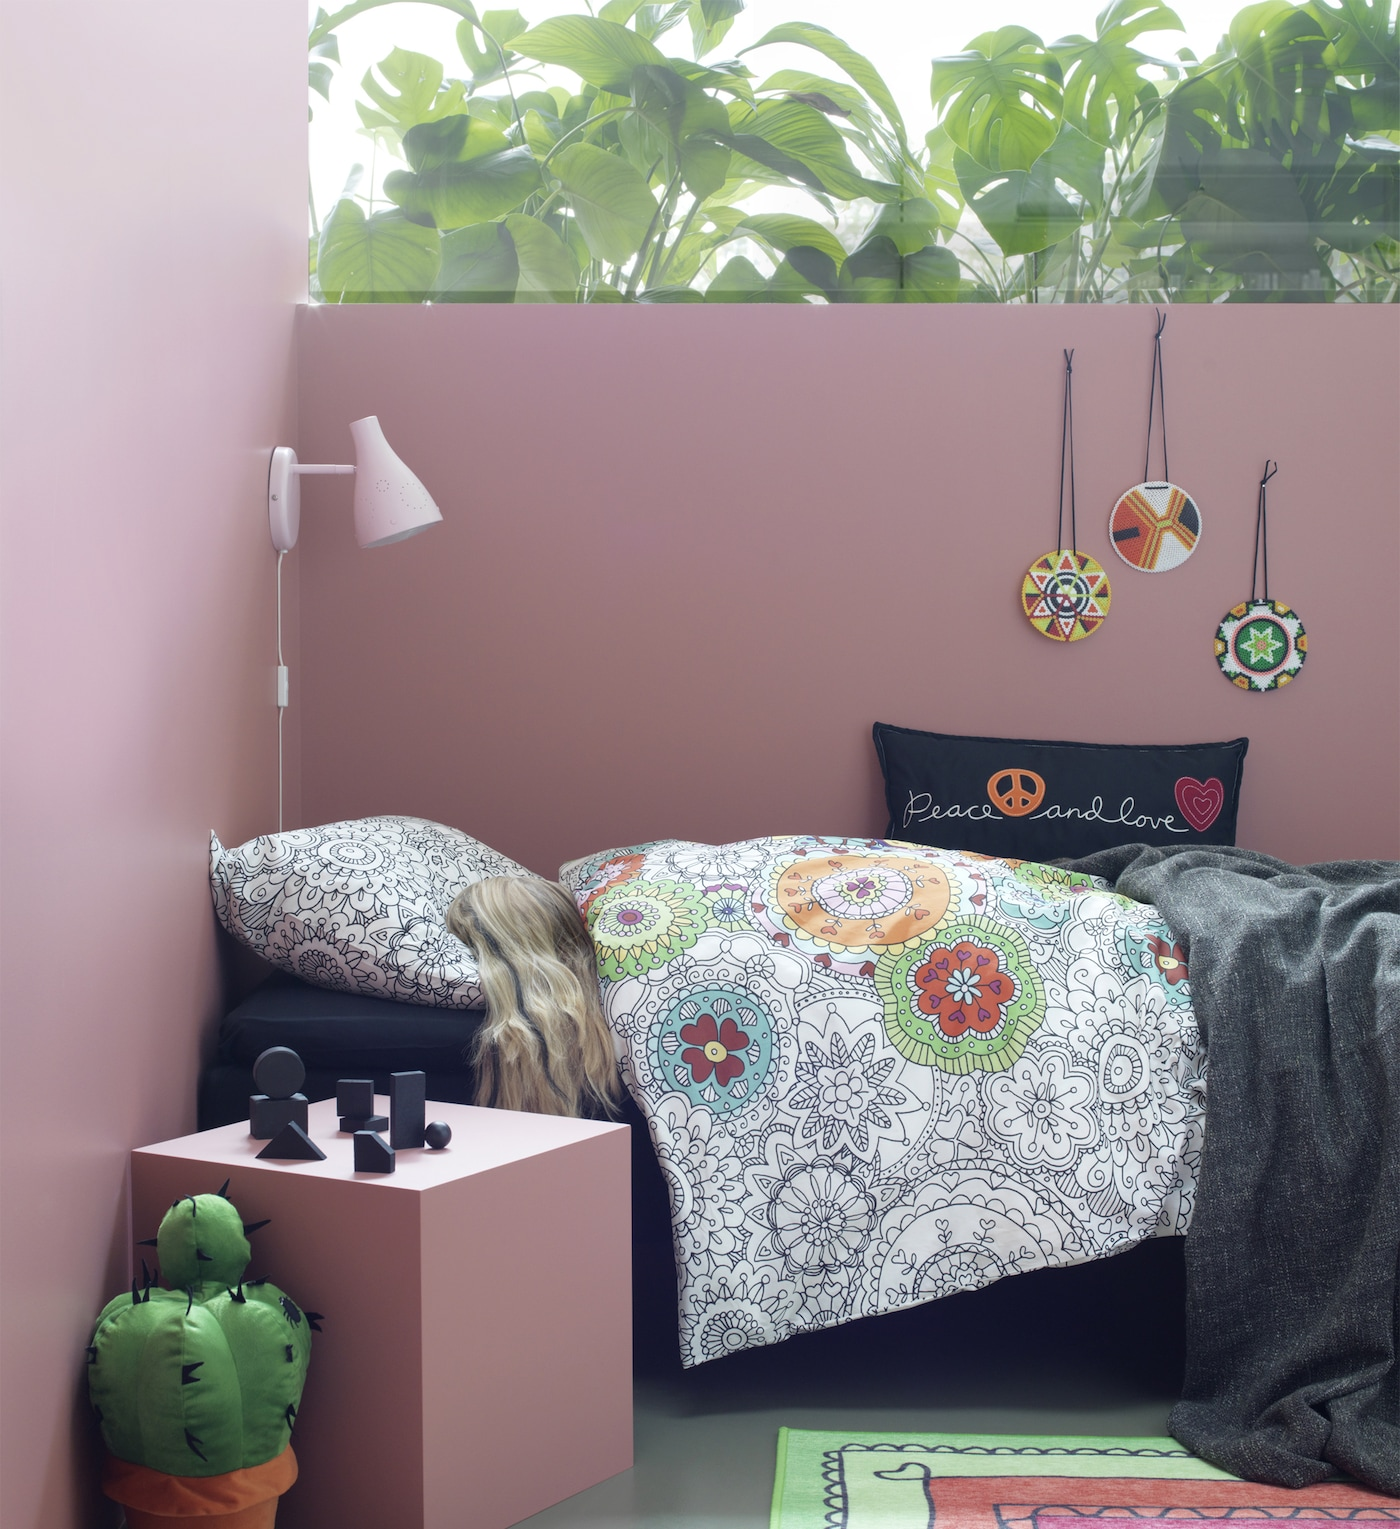 A pink room with a girl sleeping under a quilt cover with mandala-pattern. In the bed there is also a black throw cushion with peace and love text and symbols.